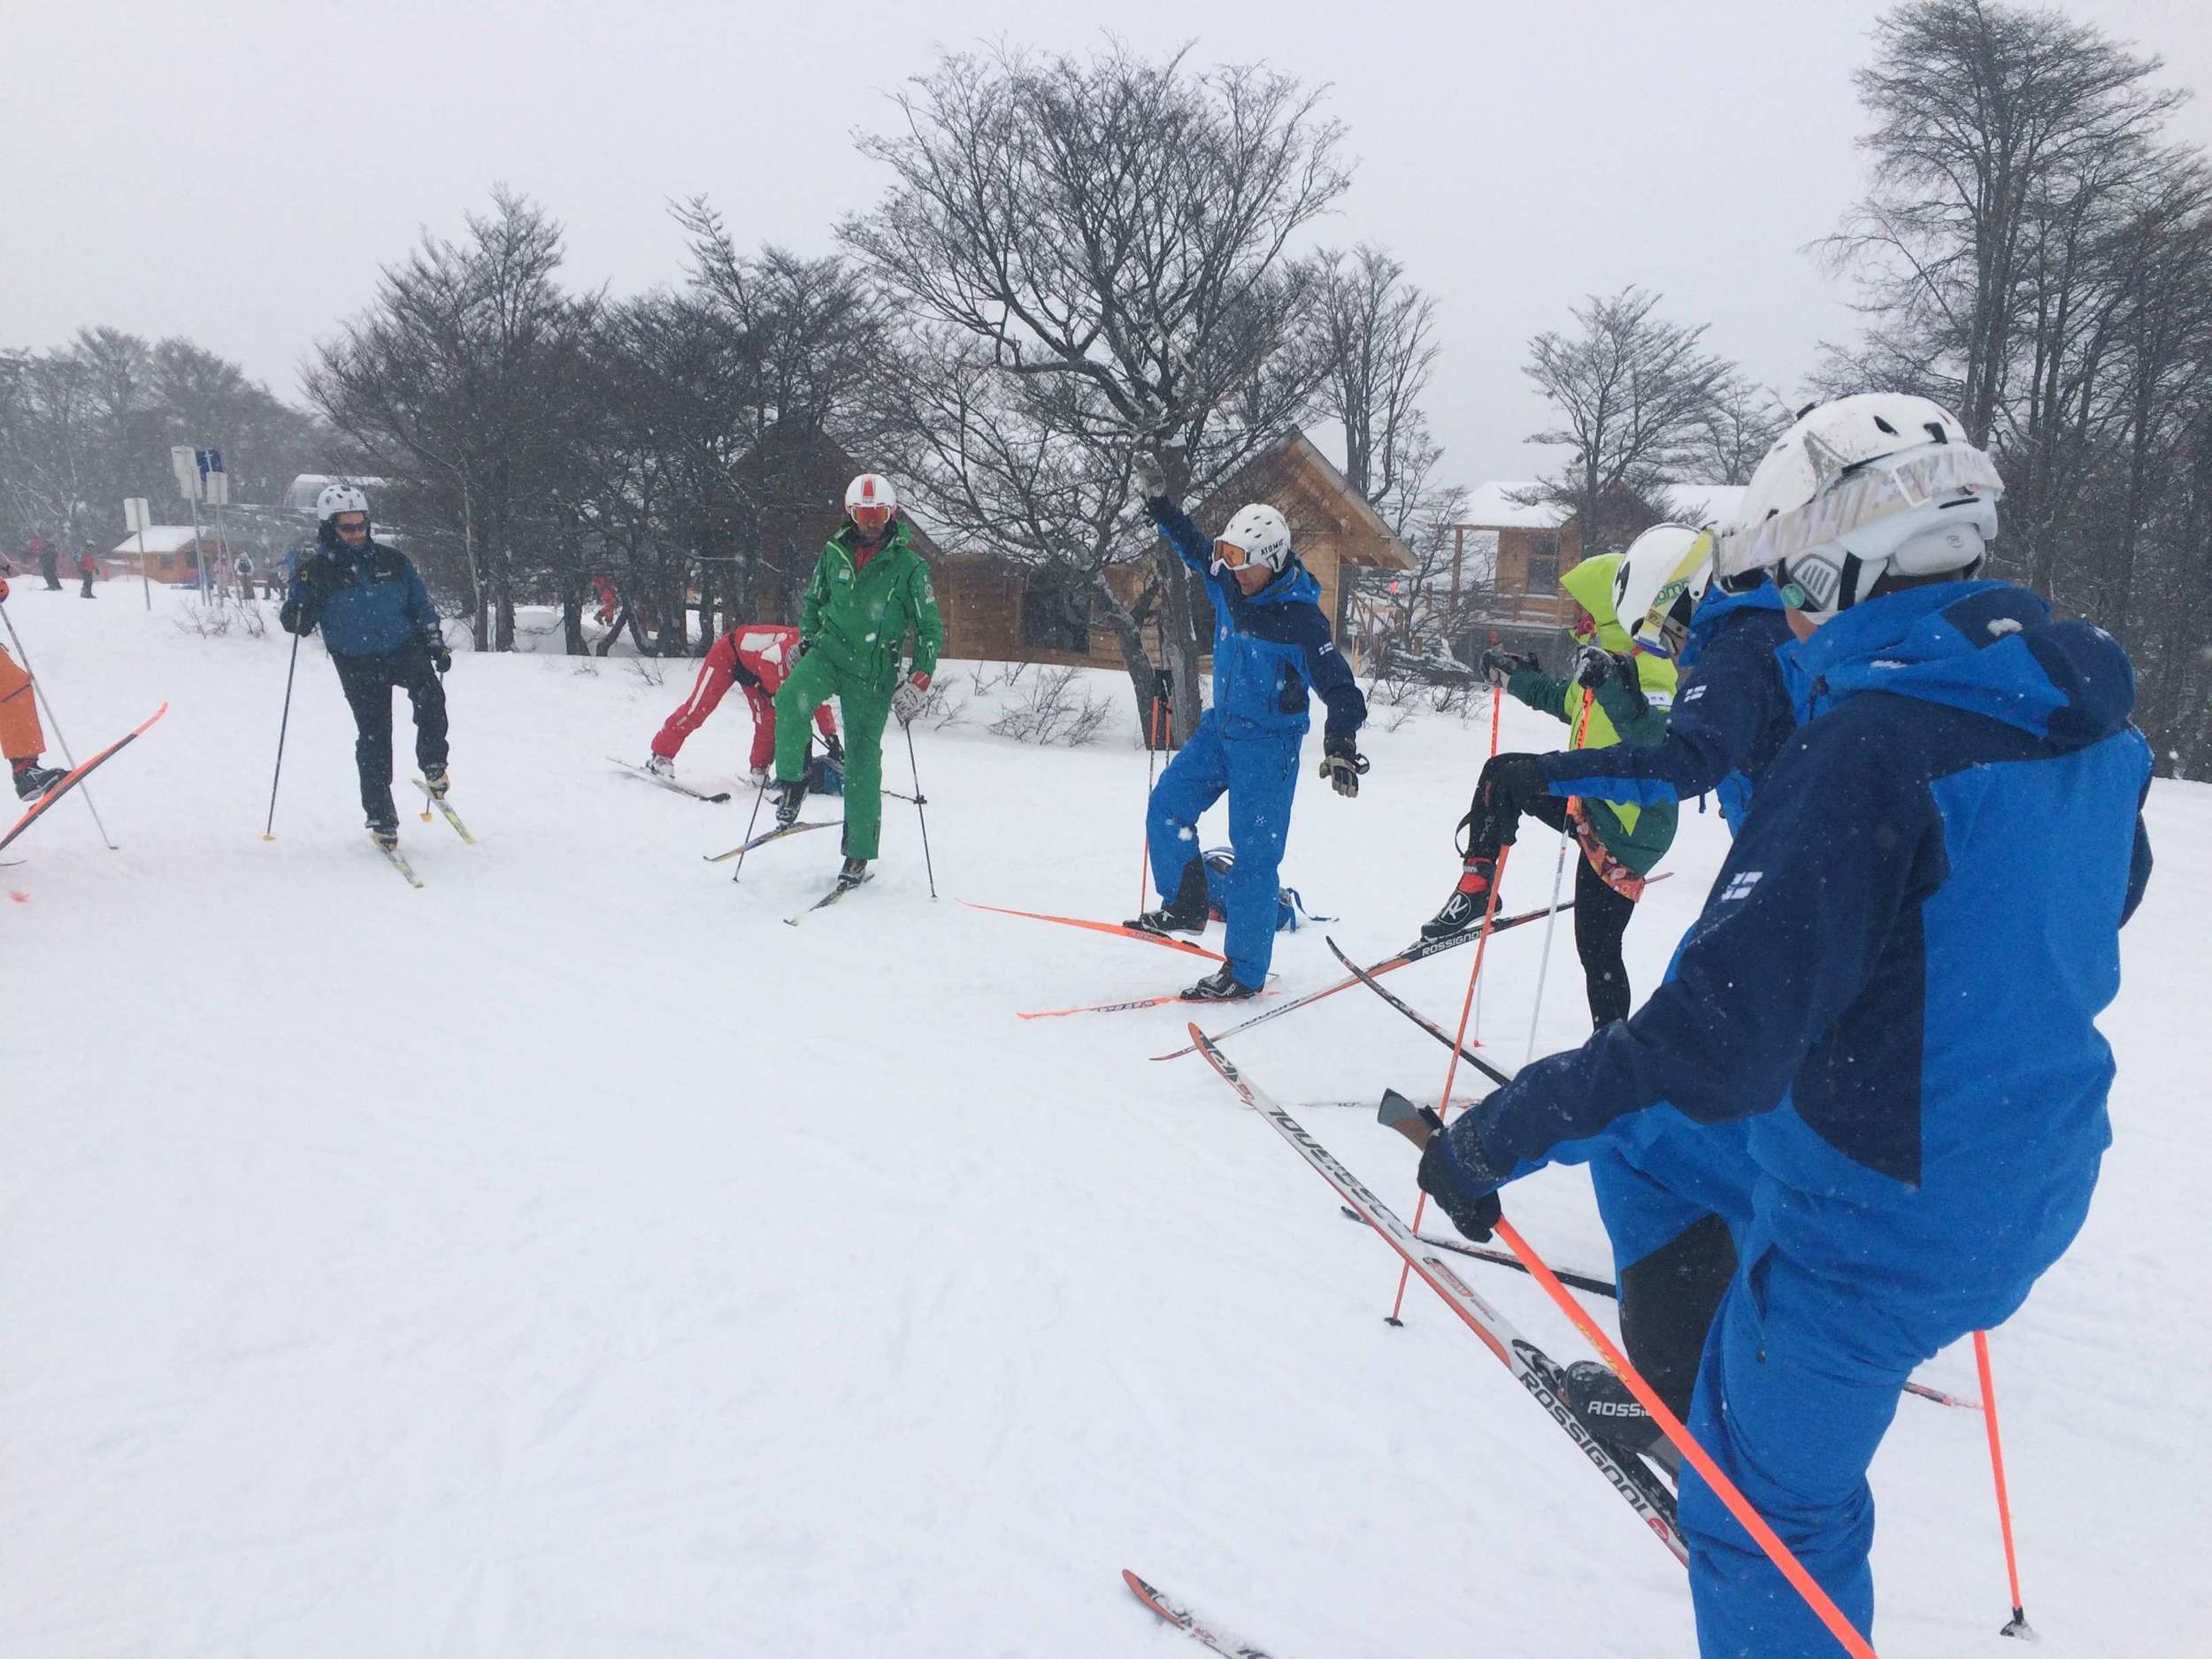 Finland on snow brought the XC skiers onto the slopes of Cerra Castor!